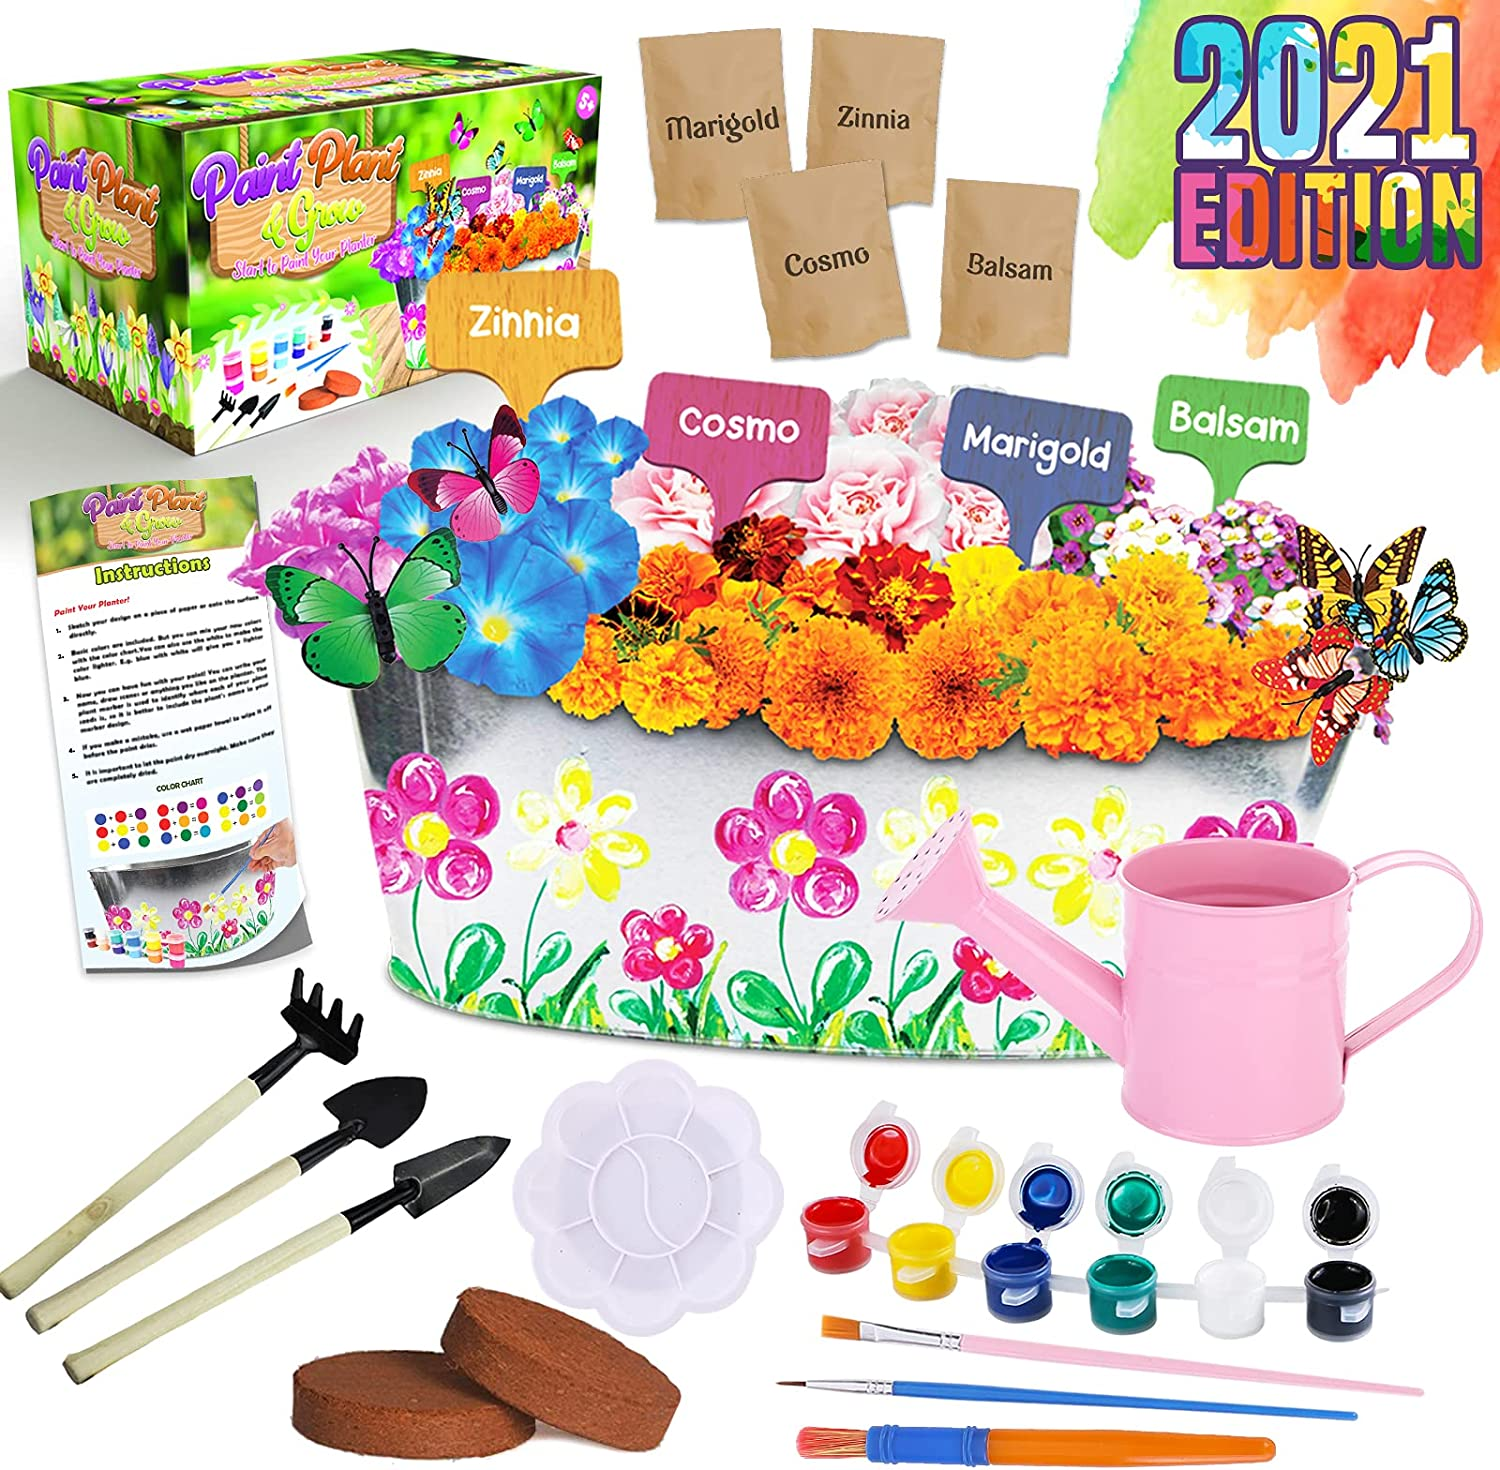 Climaxfy Flower Gardening Supplies for Kids - Growing Plants & Seeds Accessories Set Pots Indoor Garden Science STEM Toys Gift Crafts Birthday Arts Kits Ages 4 5 6 7 8-12 Year Old Boys Girls